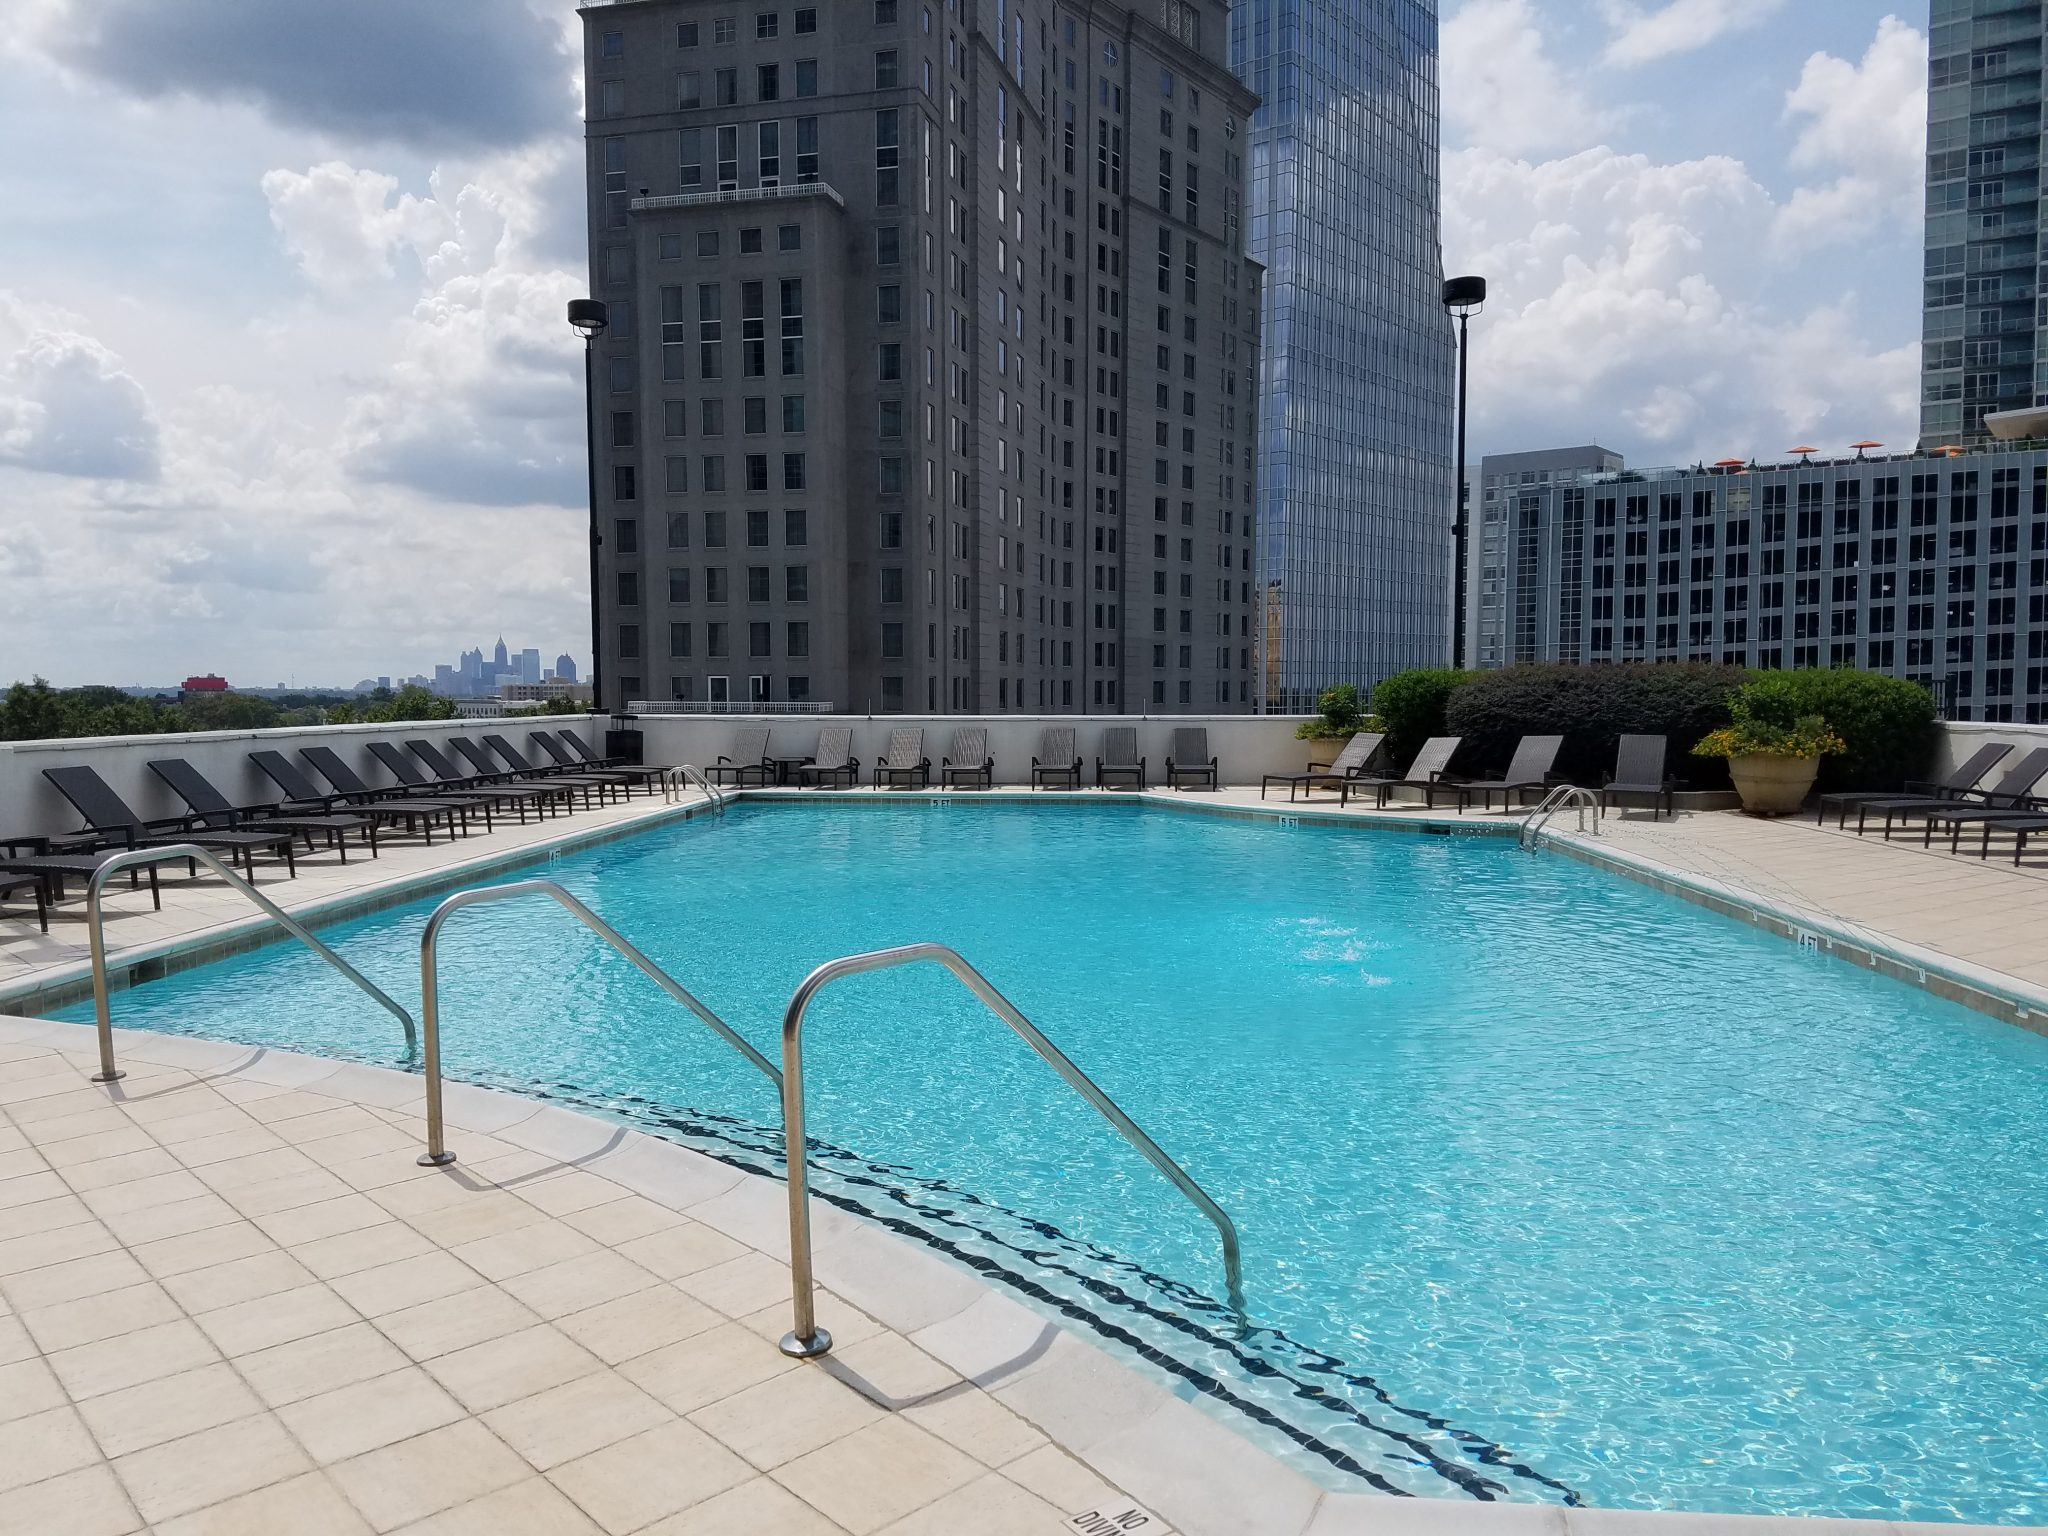 The Realm in Buckhead Swimming Pool with view of Downtown Atlanta in background